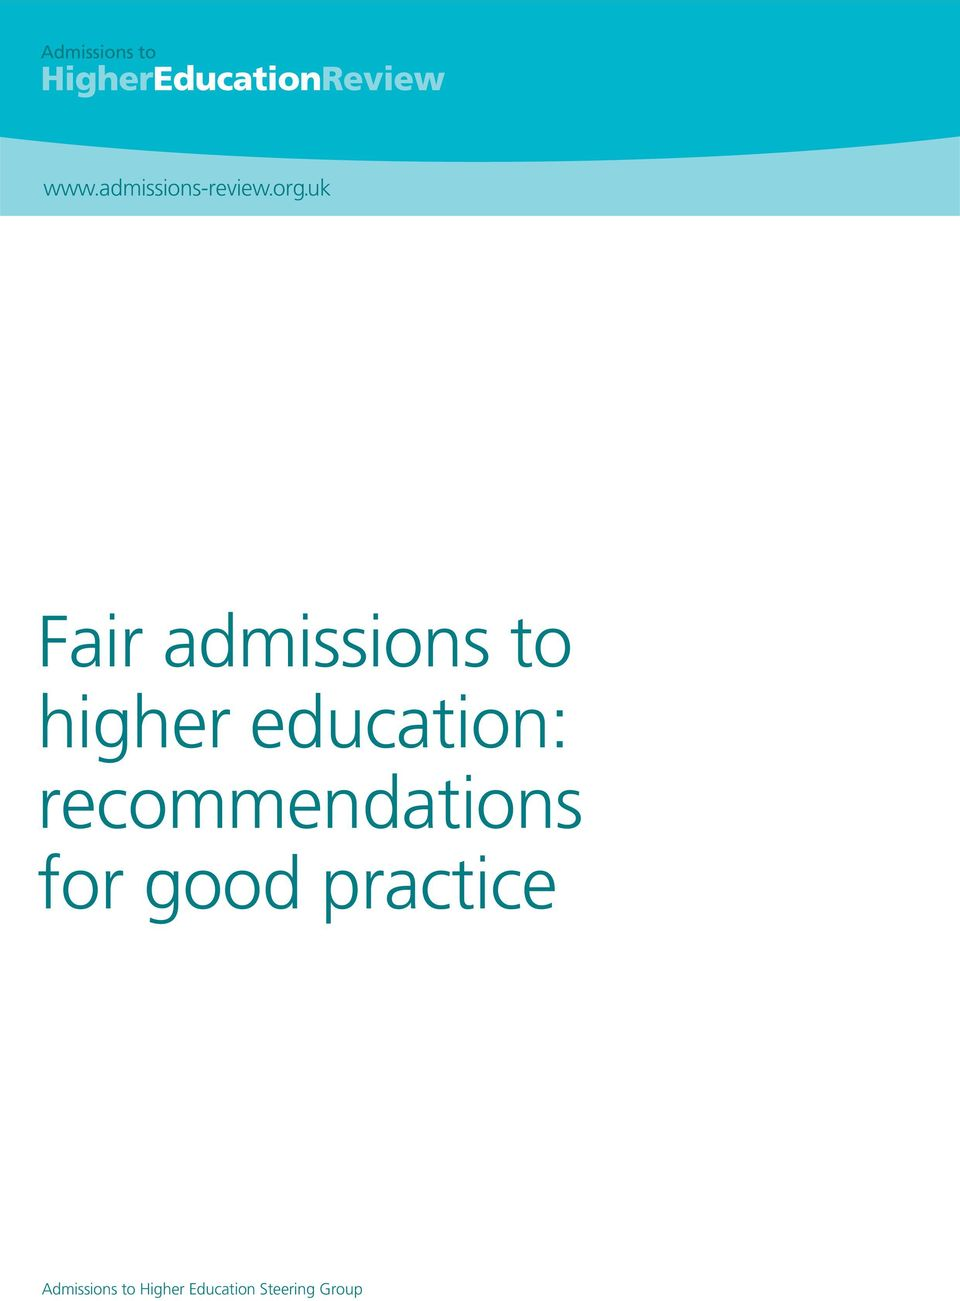 education: recommendations for good